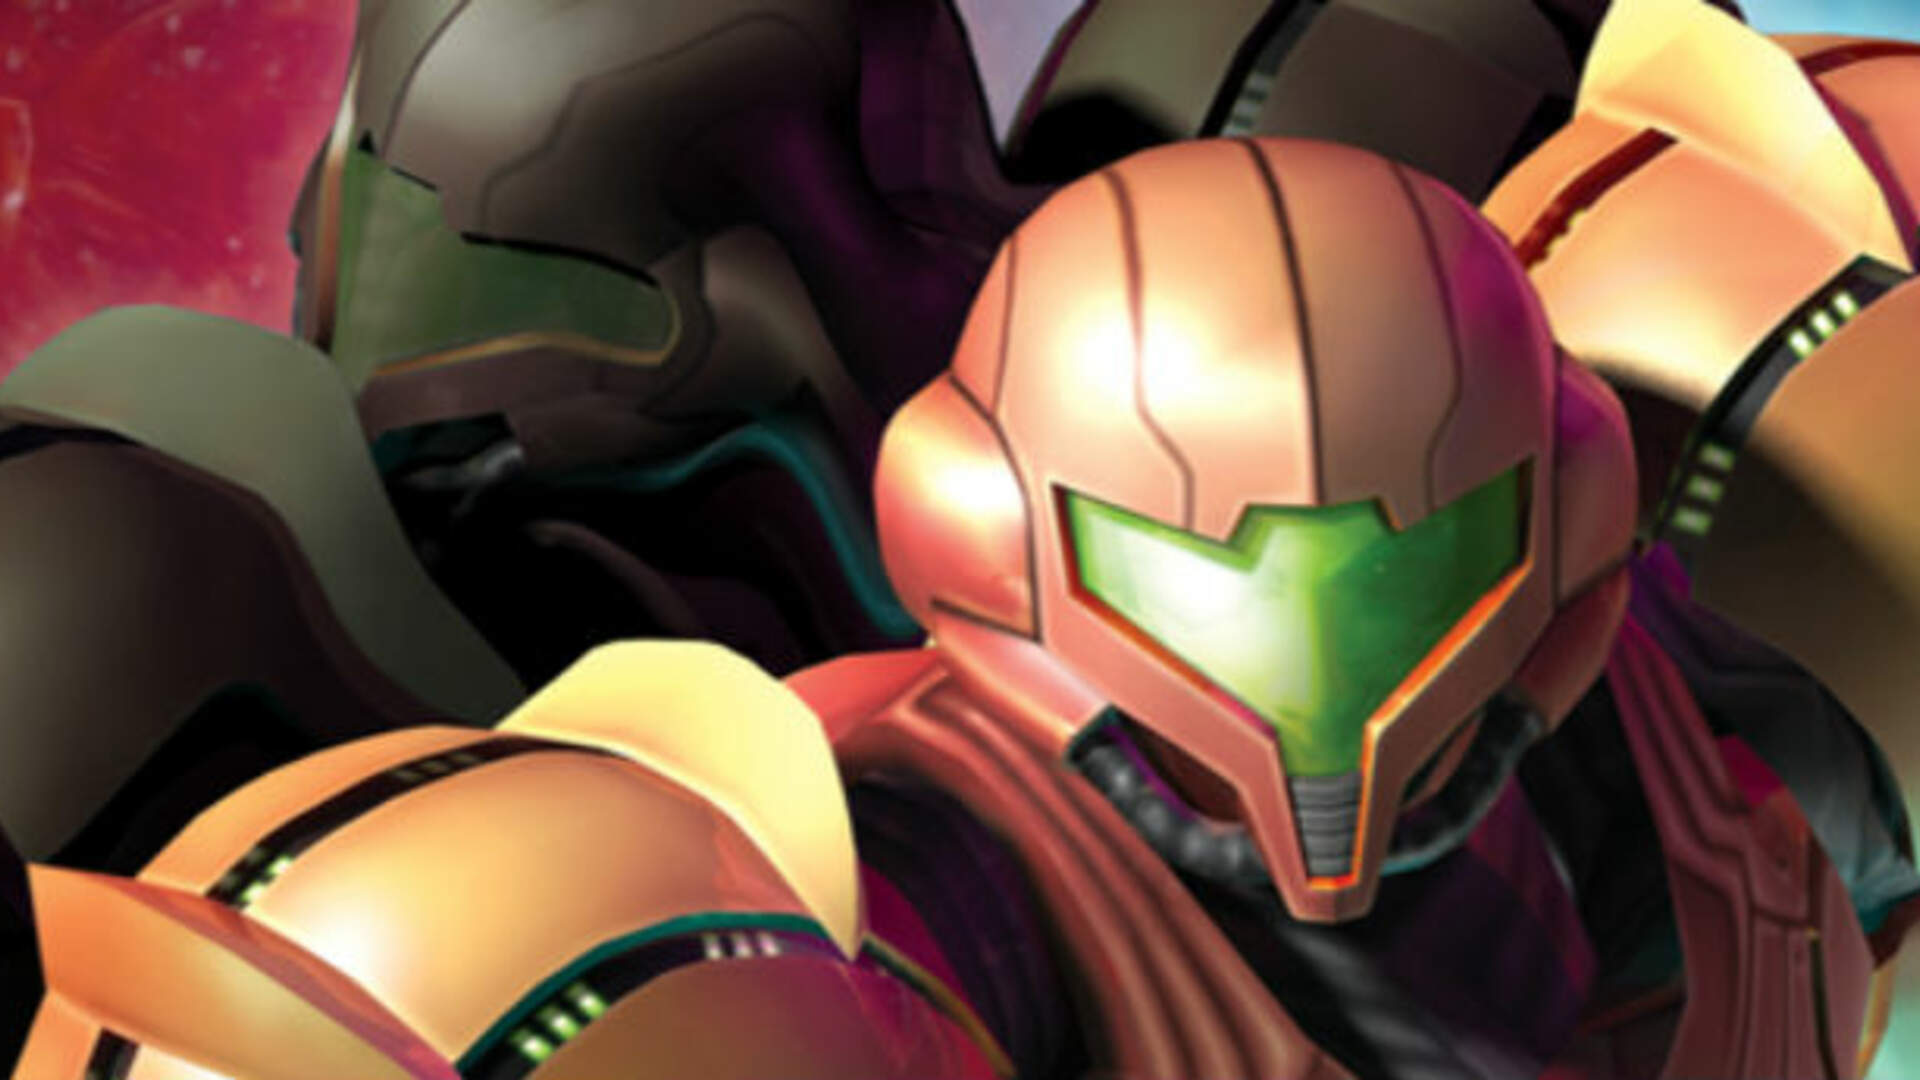 Metroid Game By Game Reviews: Metroid Prime 3: Corruption